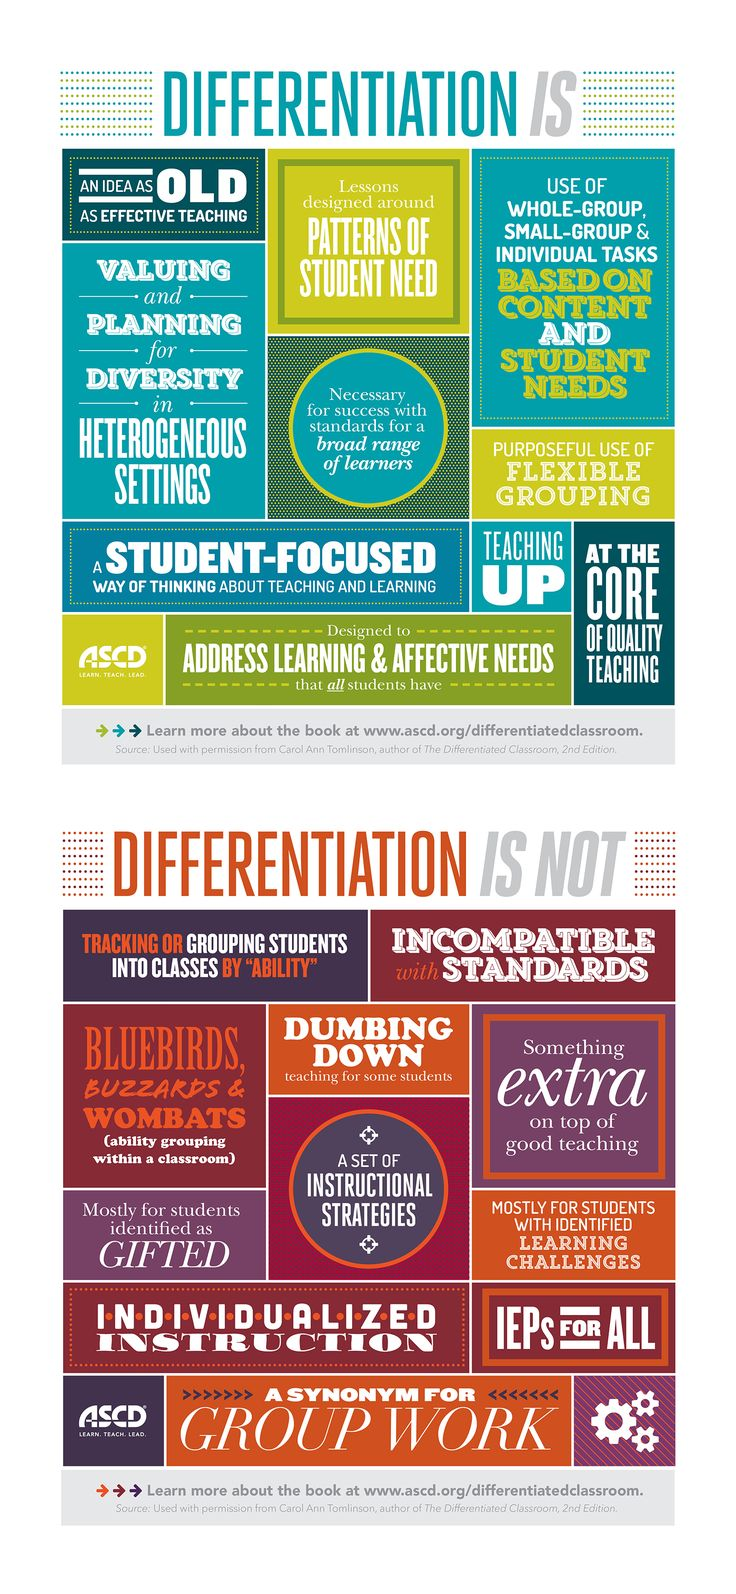 Here's a snapshot of differentiation—in terms of what it is and is not.